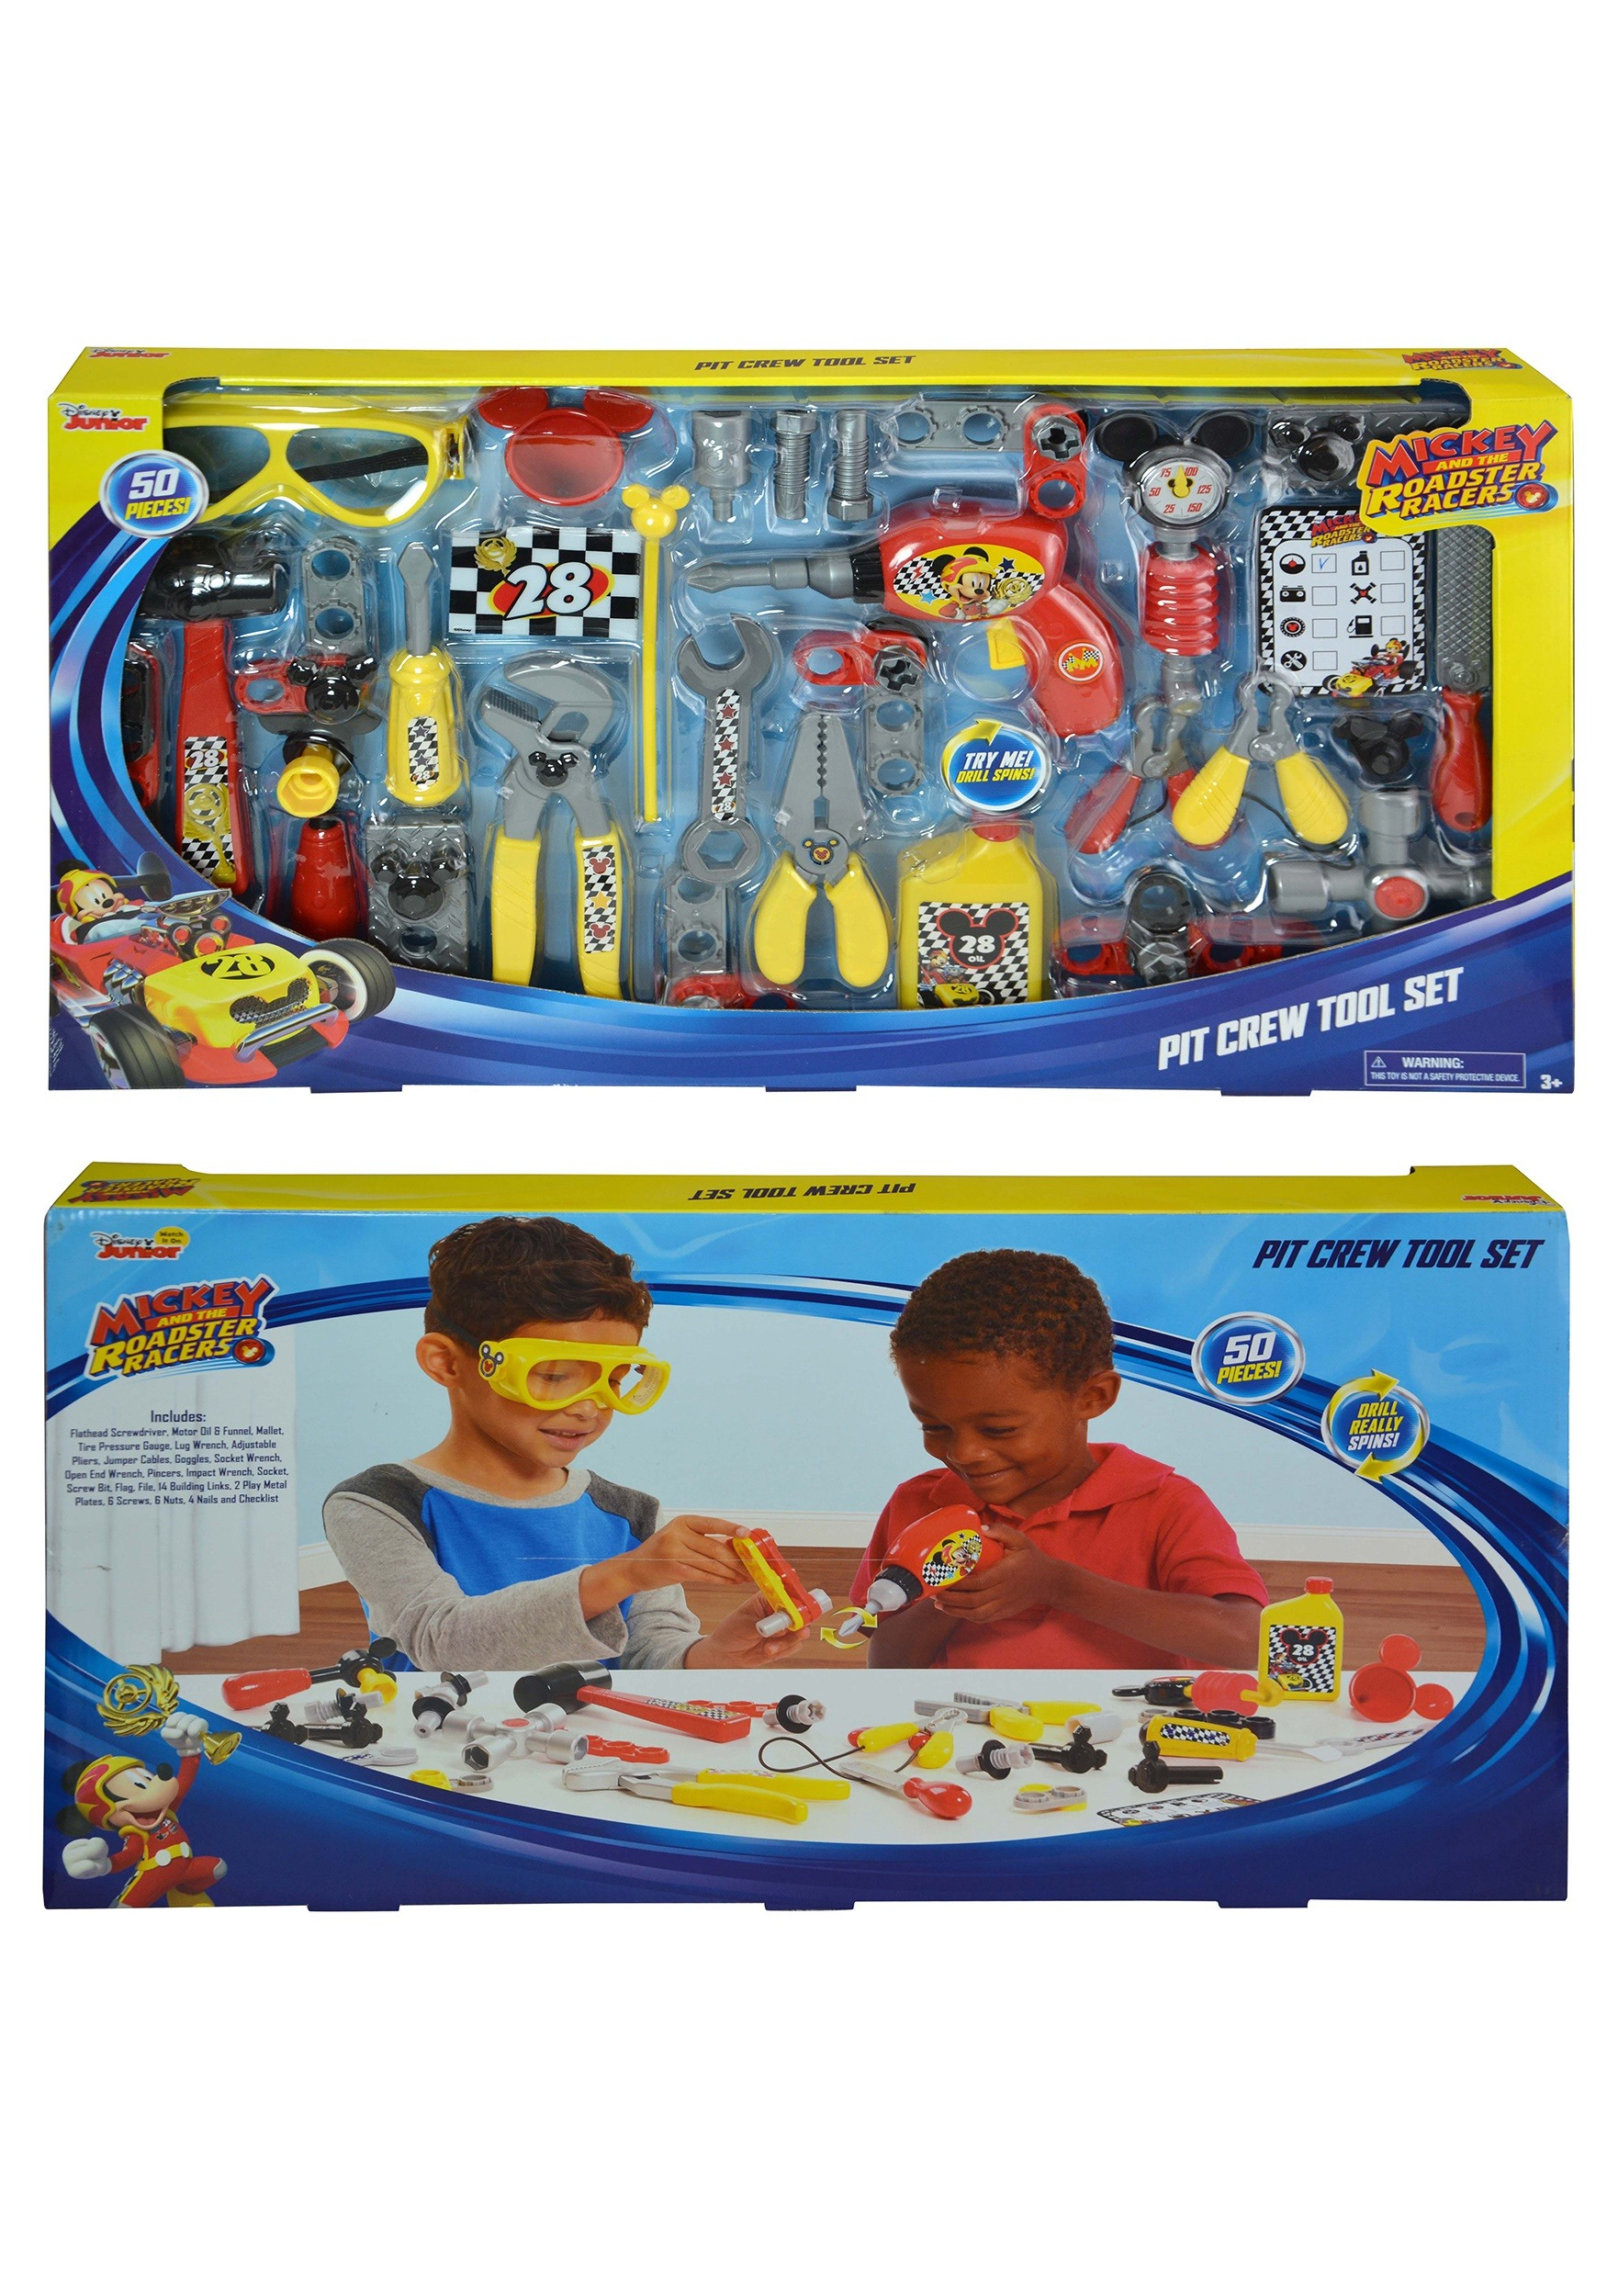 d4b9ddcad2b20 Mickey Mouse and the Roadster Racers Pit Crew Tool Set